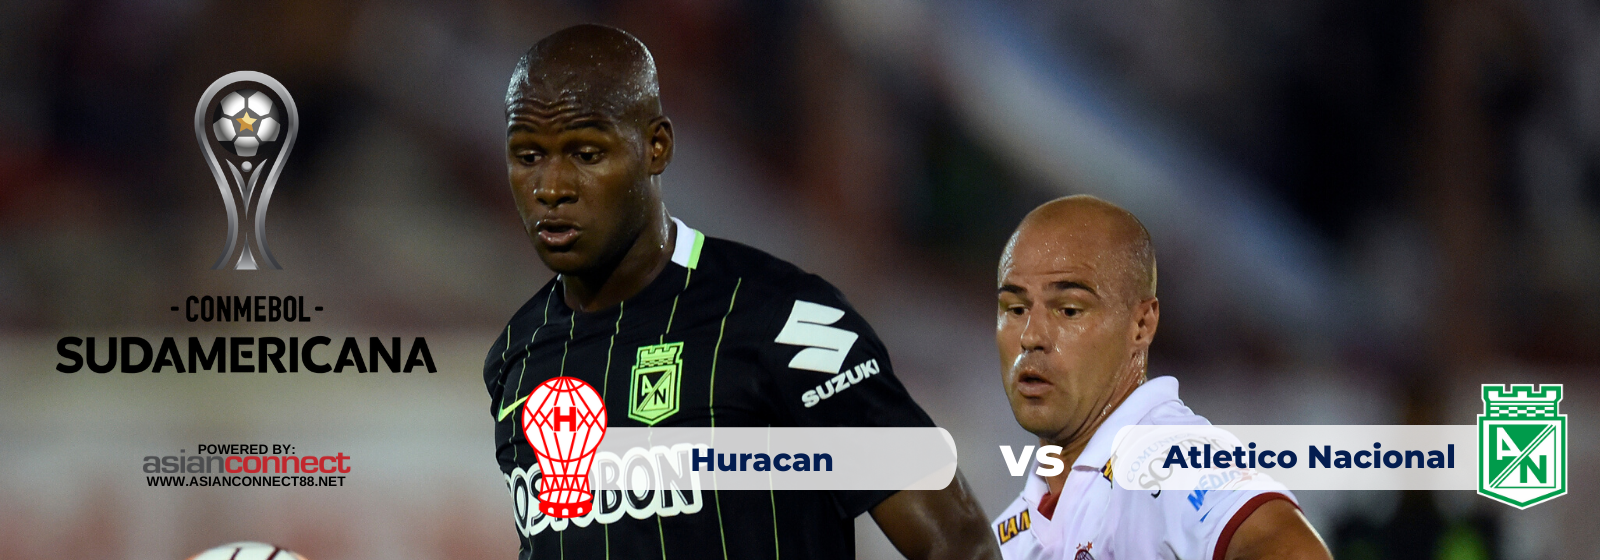 Asianconnect: Huracan (Argentina) vs Atletico Nacional (Colombia) Odds for February 19, 2020